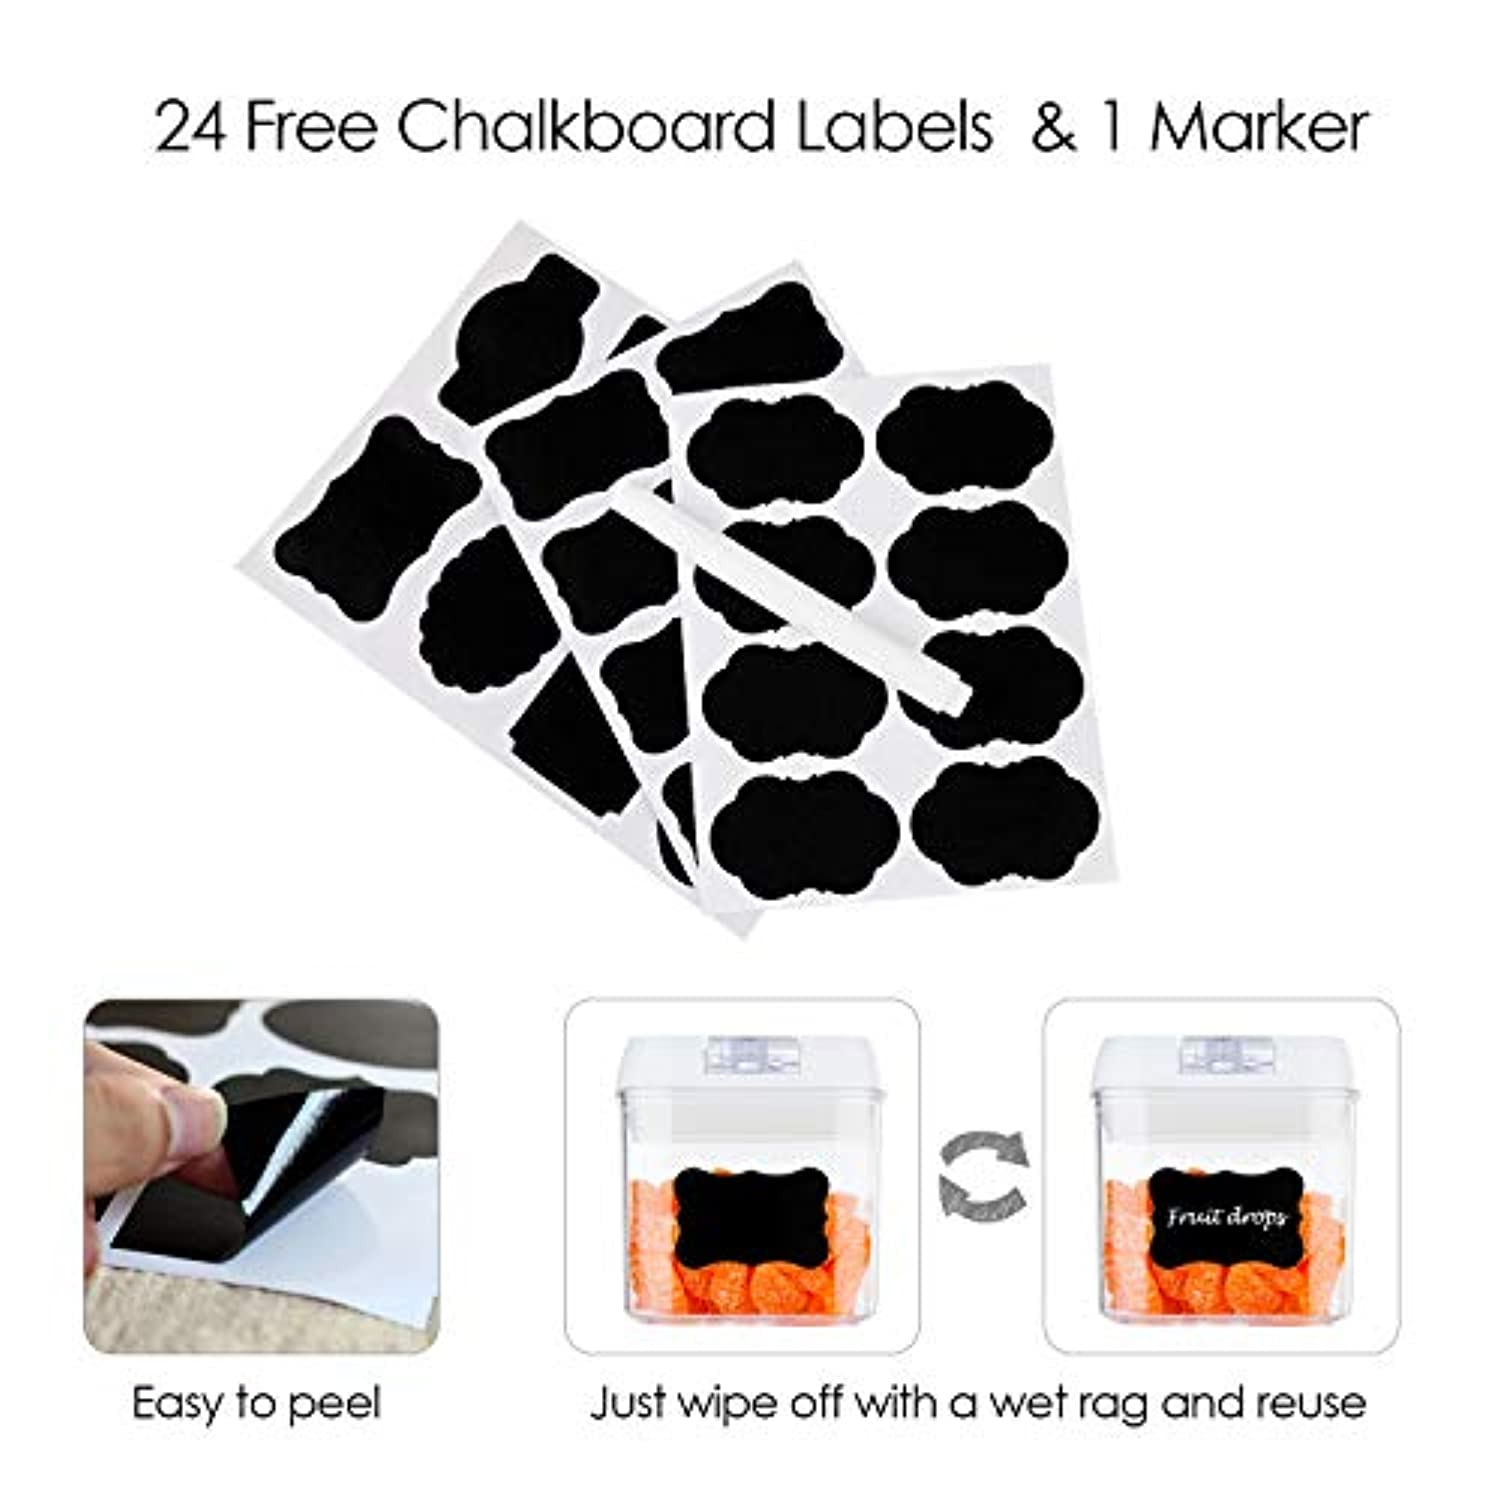 Classier: Buy Vtopmart Airtight Food Storage Containers,Vtopmart 7 Pieces BPA Free Plastic Cereal Containers with Easy Lock Lids,for Kitchen Pantry Organization and Storage,Include 24 Free Chalkboard Labels and 1 Marker